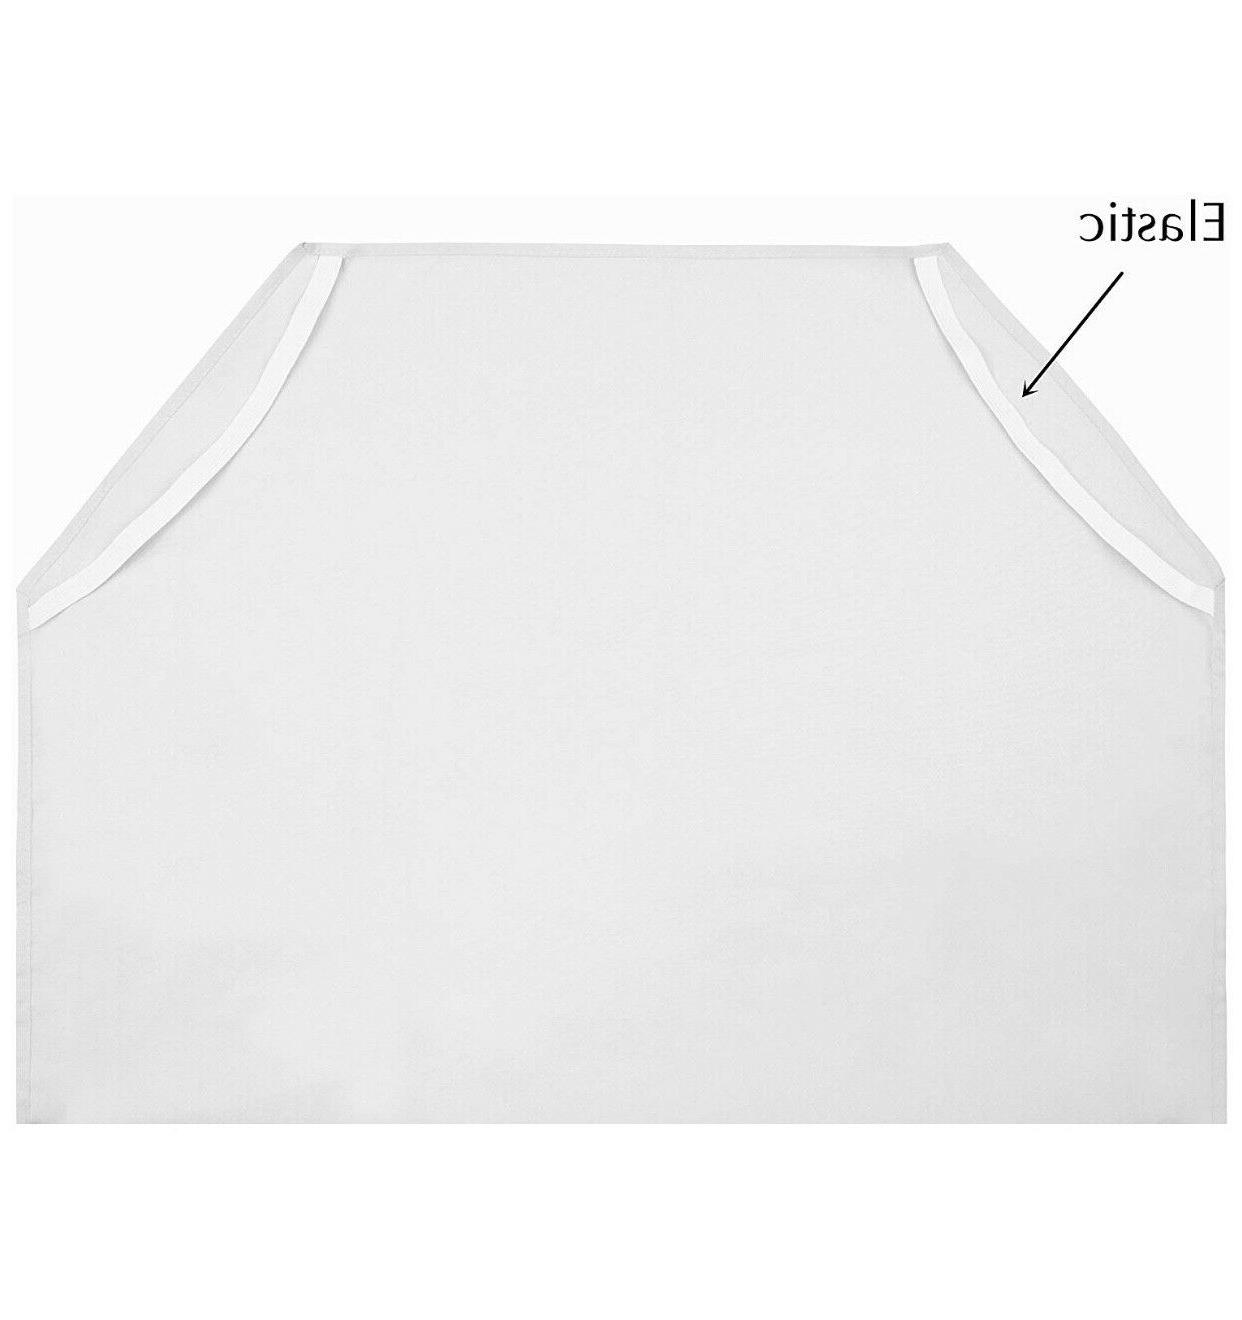 American Size Care Cot Sheet - White Style#7661WT